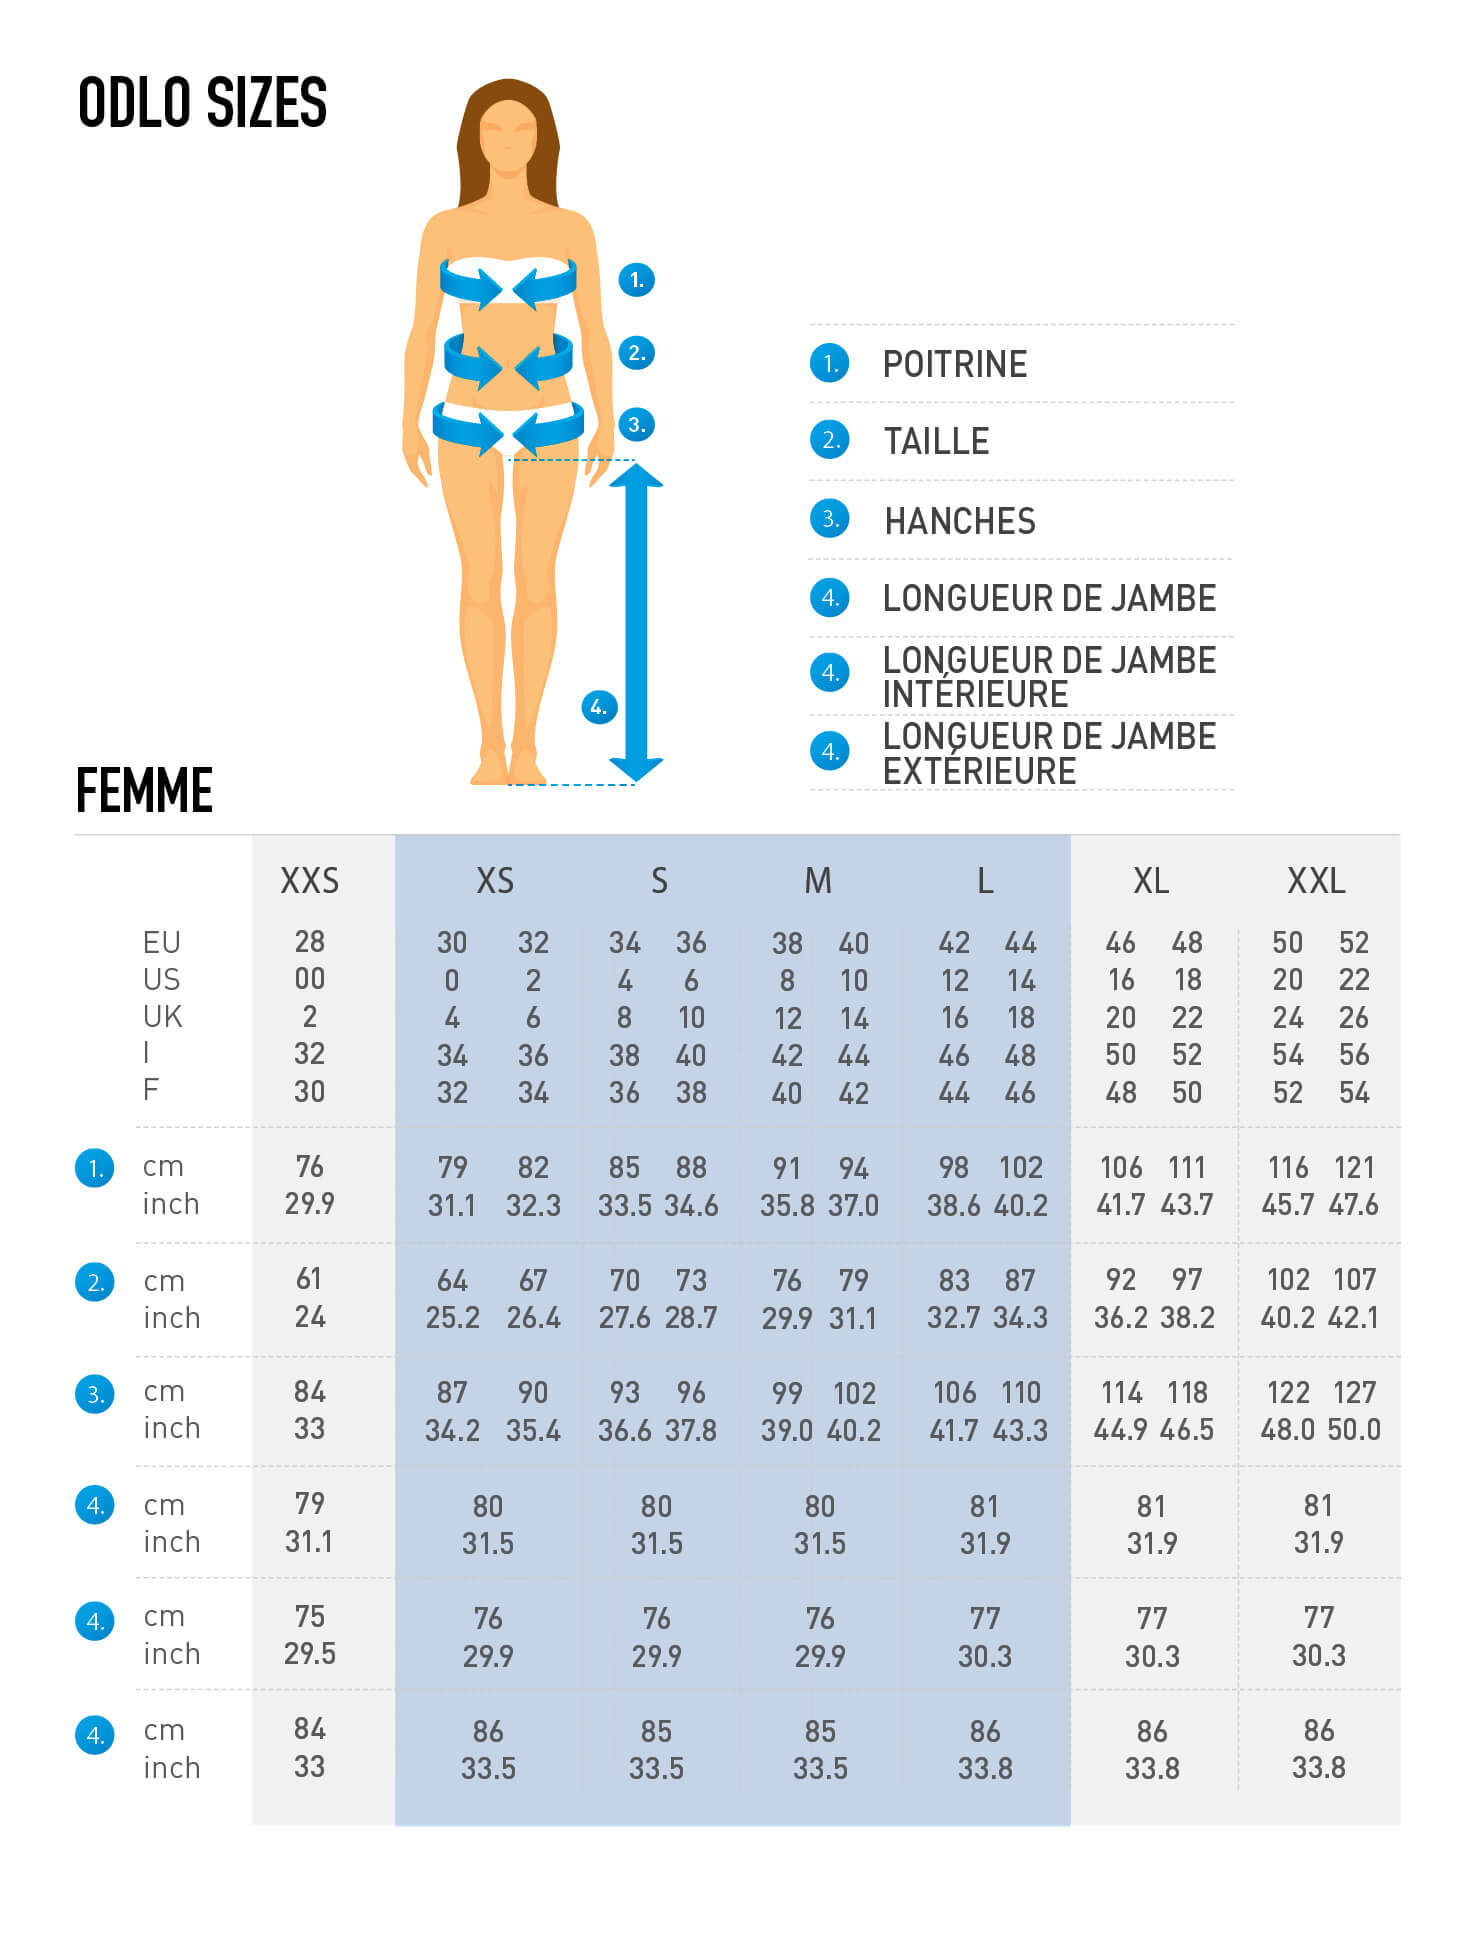 Women Size Chart Without Model | ODLO